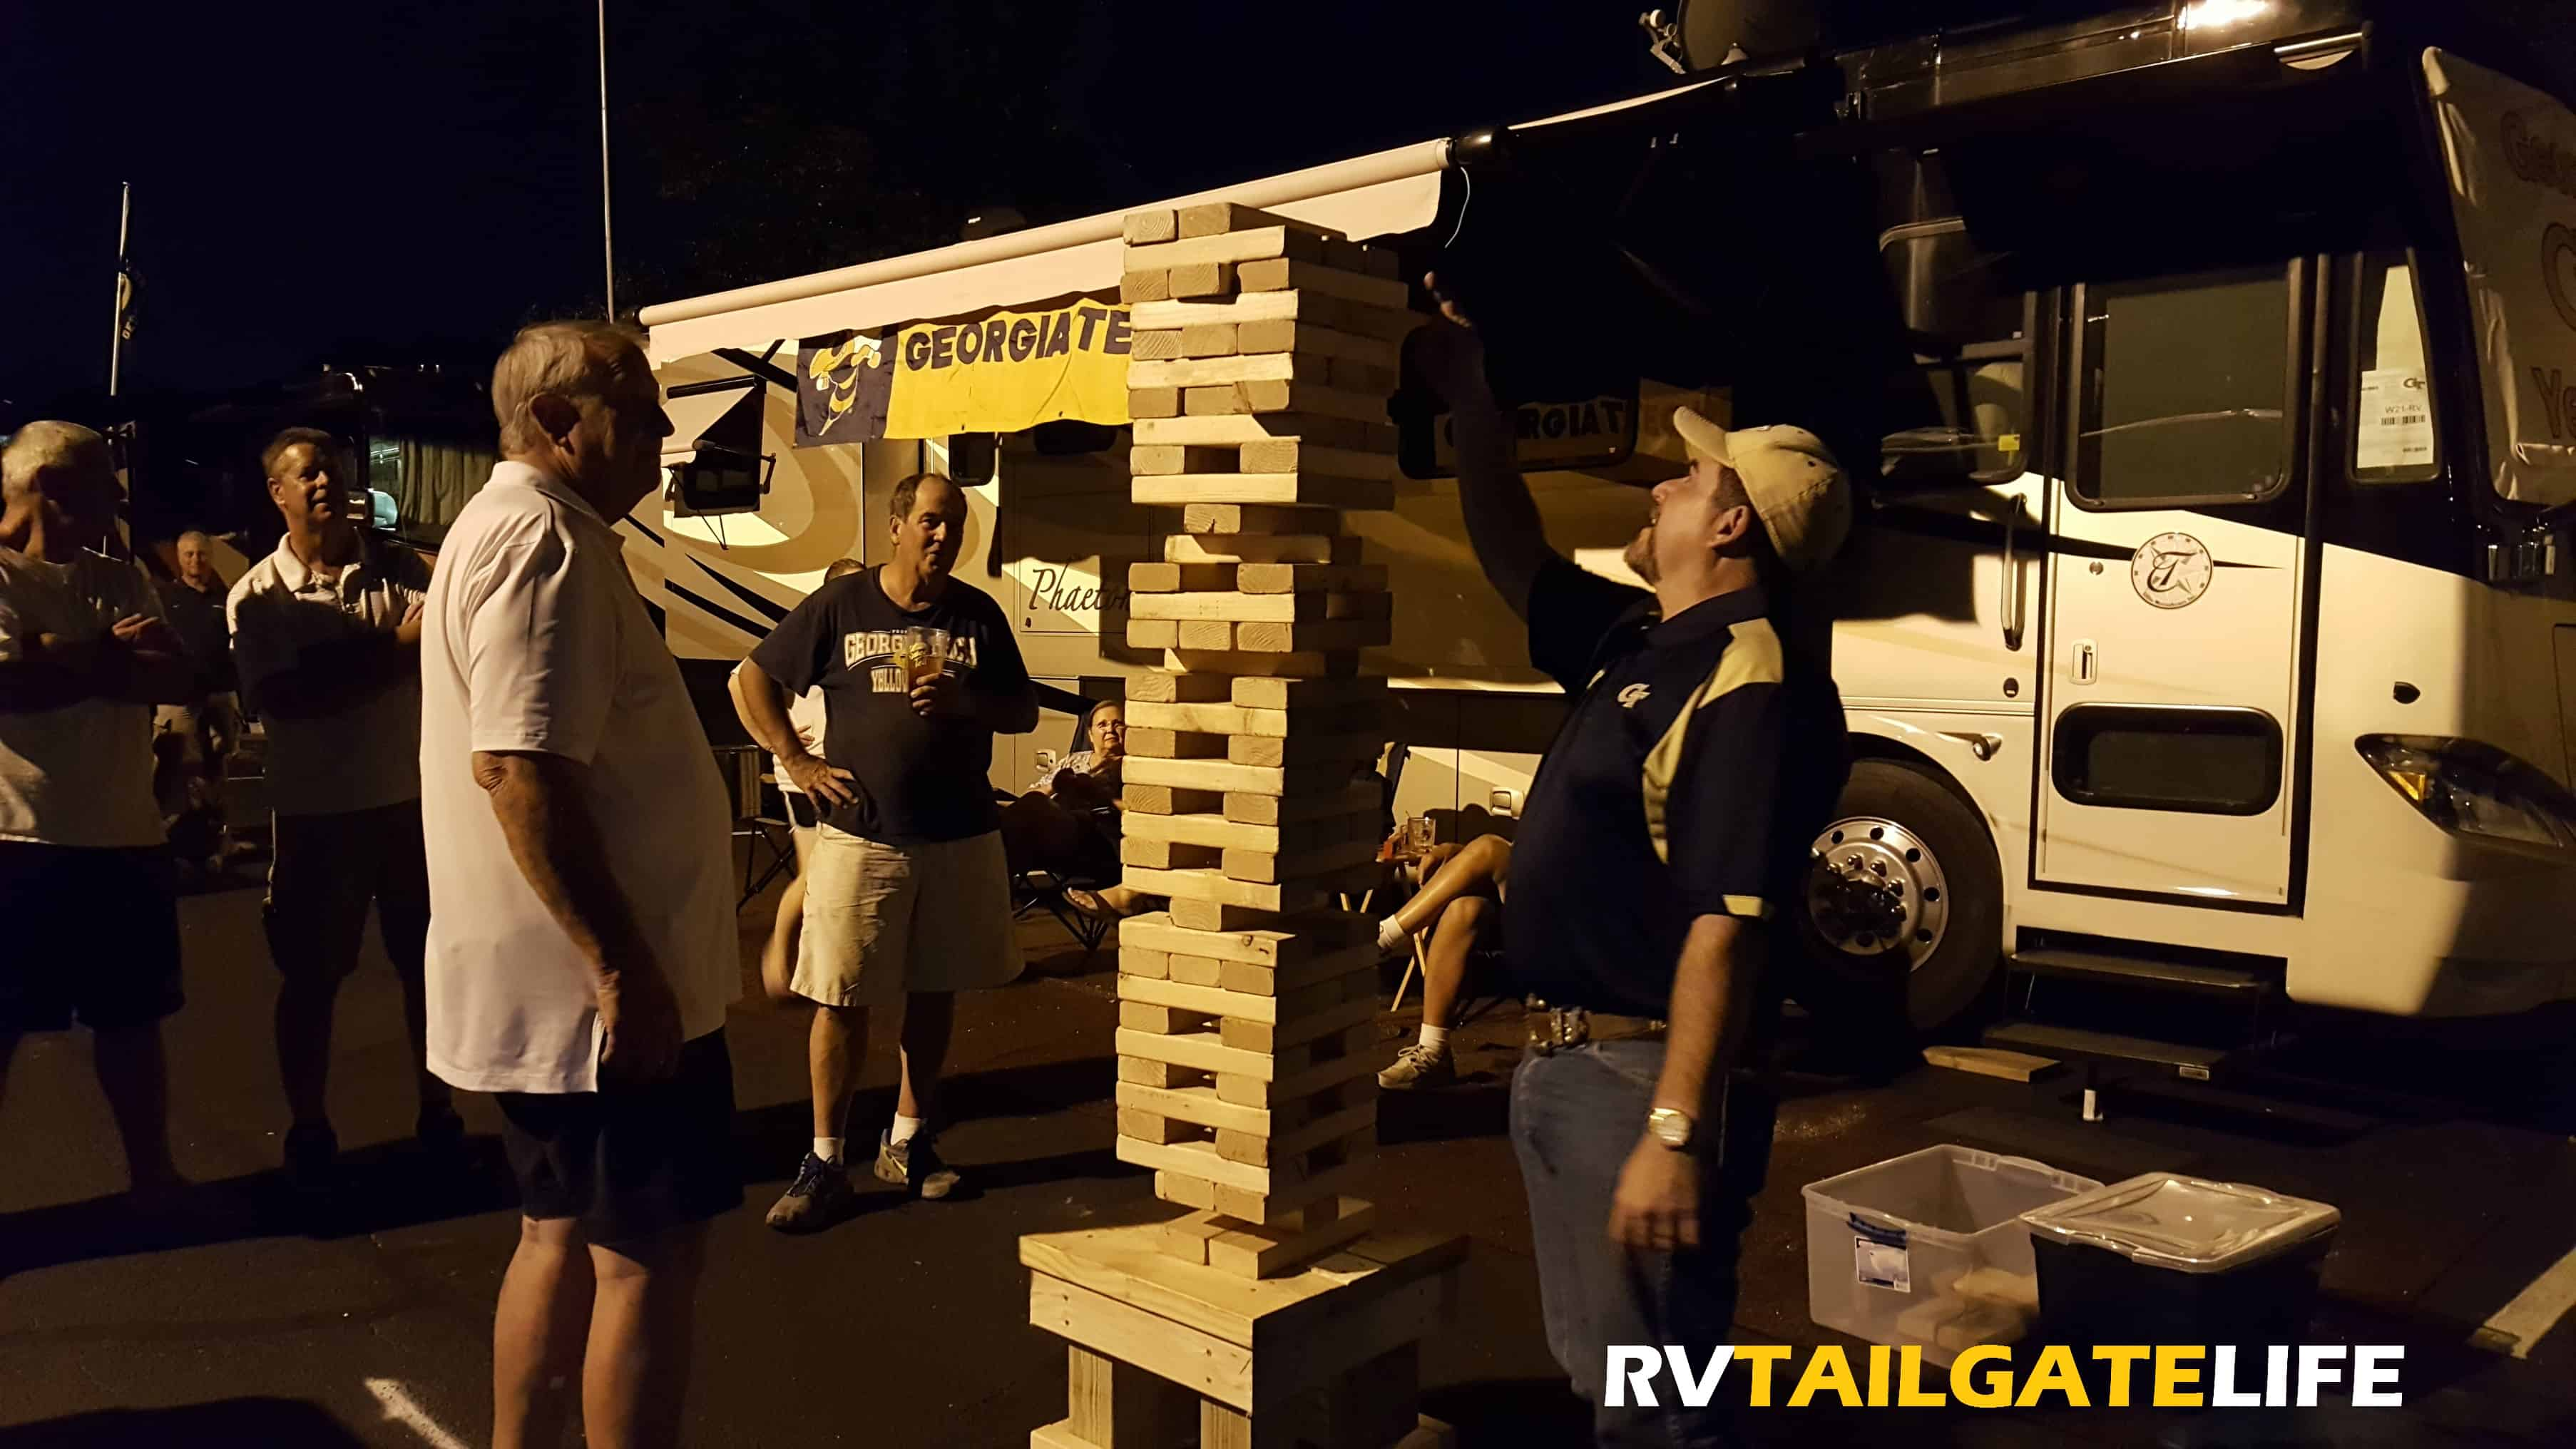 The RVTailgateLife tailgate games includes a giant outdoor version of Jenga